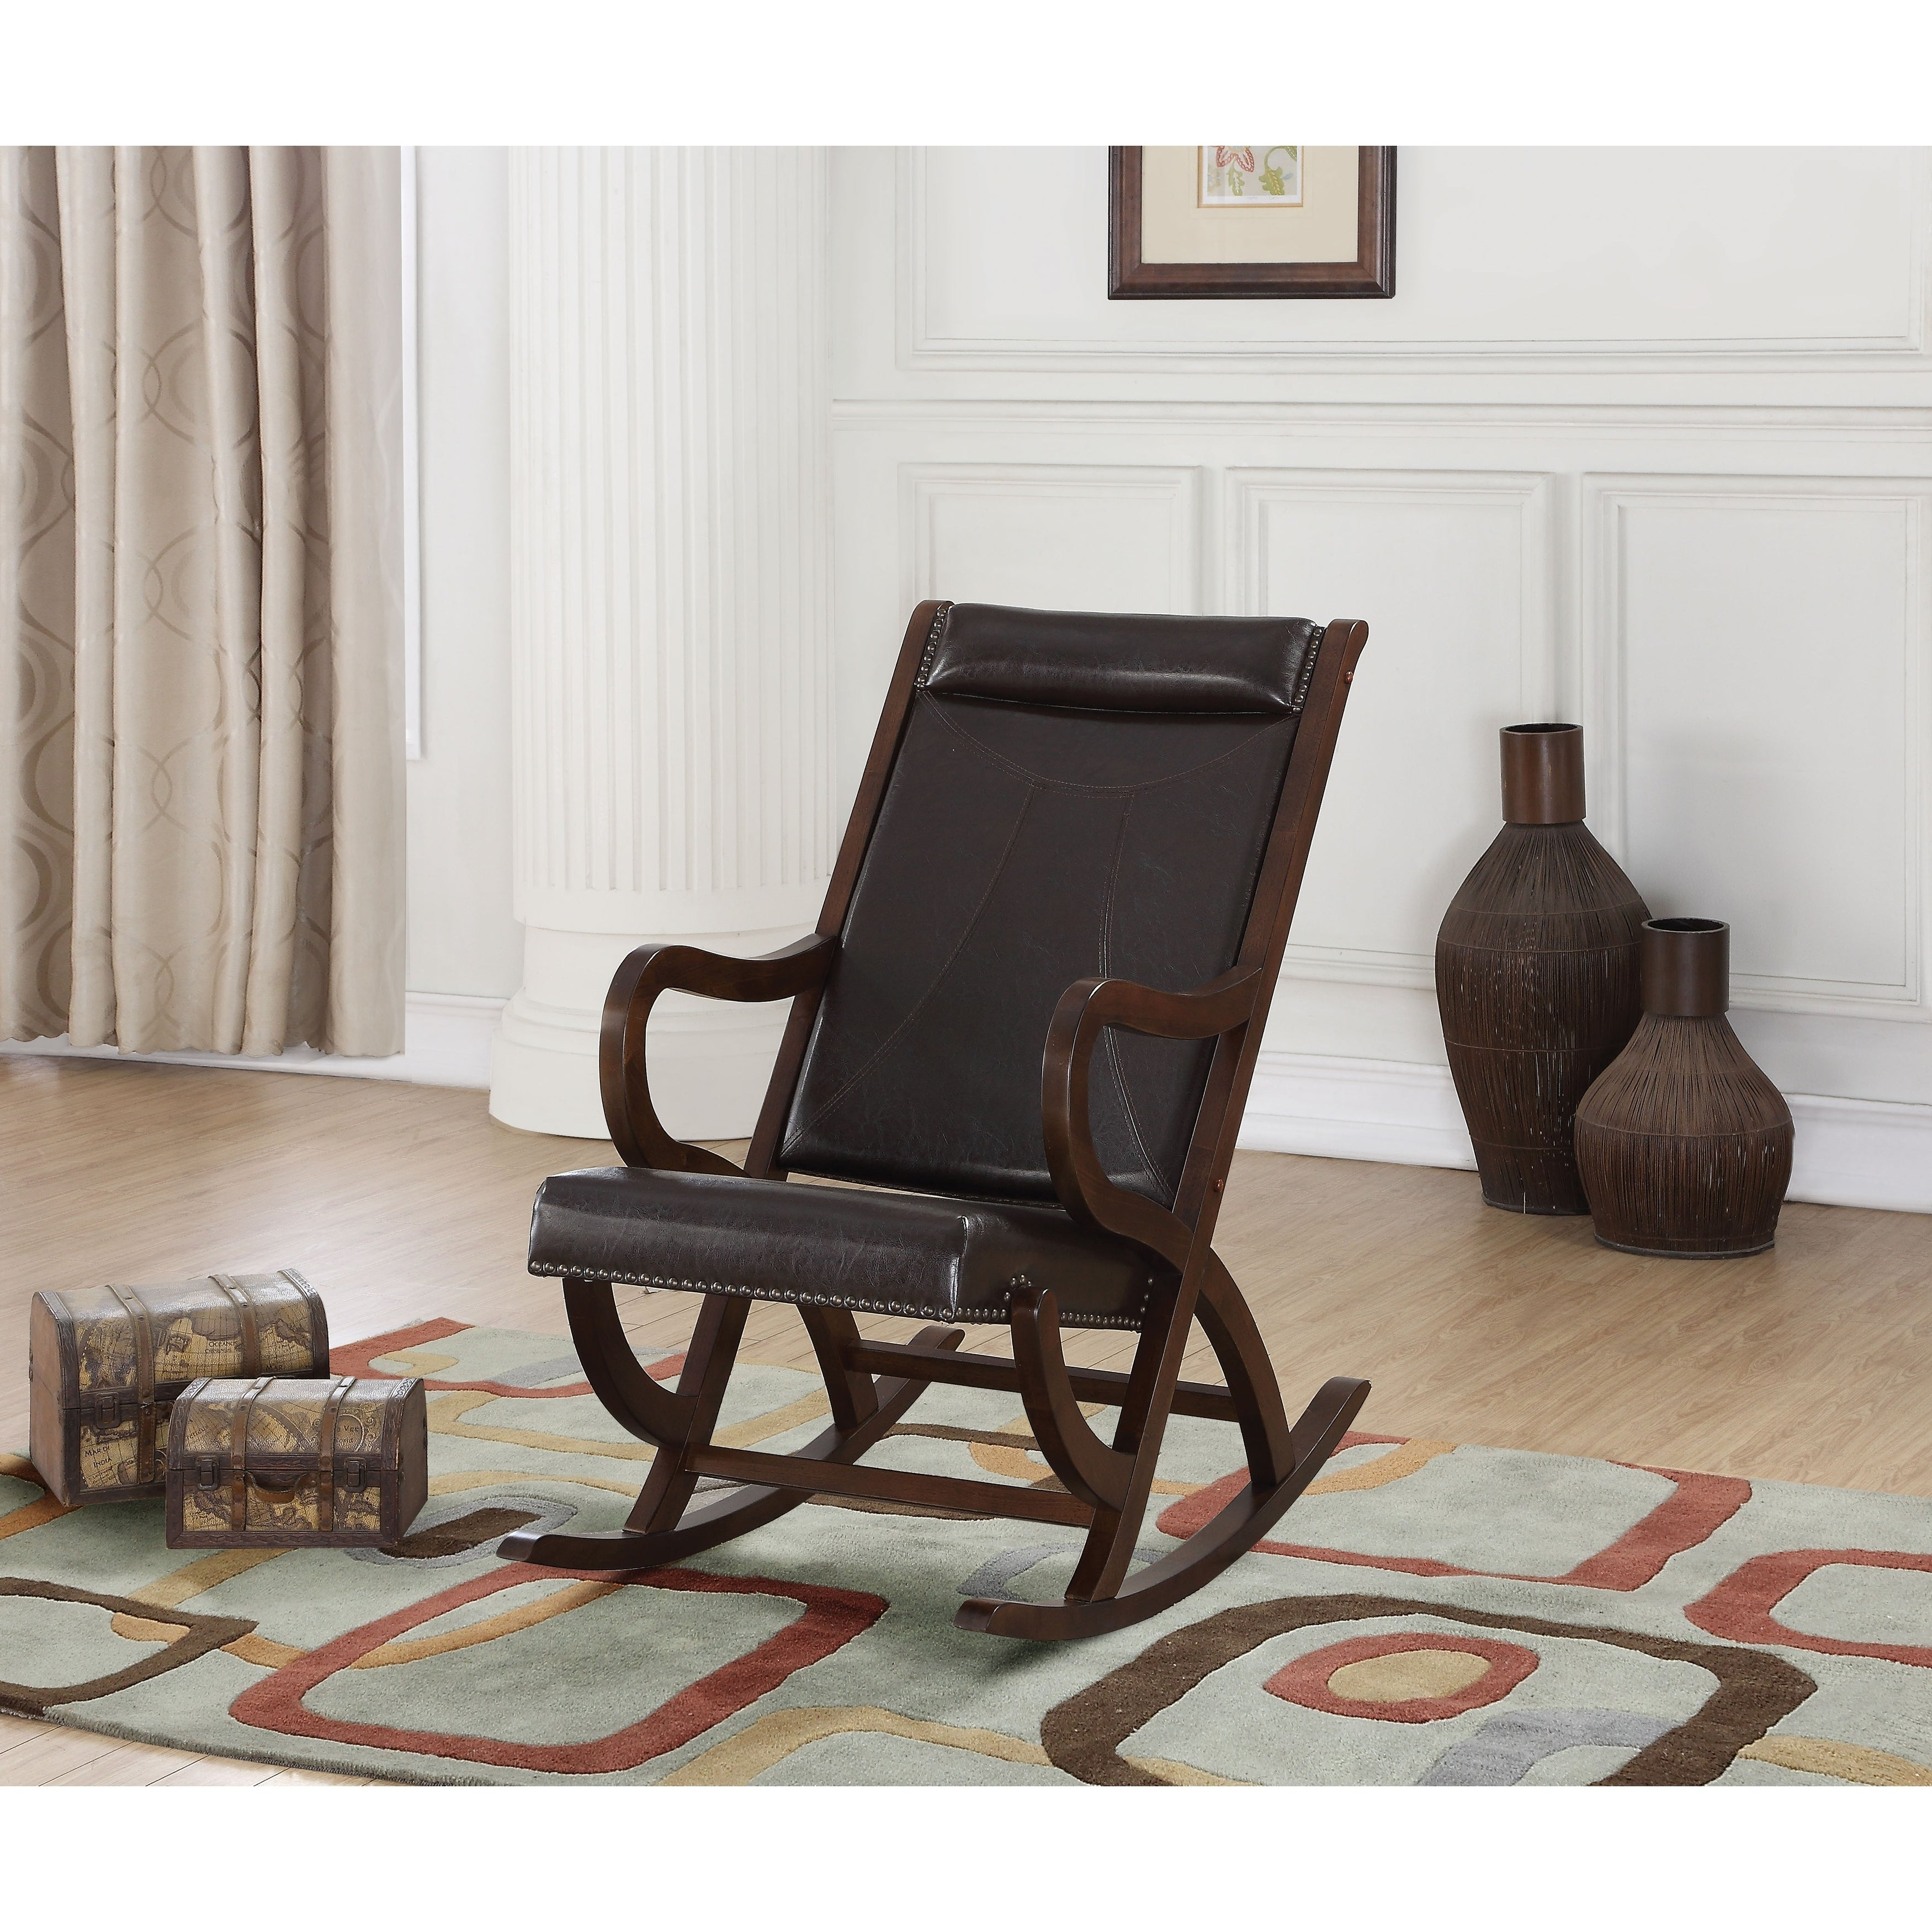 Faux Leather Upholstered Wooden Rocking Chair With Looped Arms, Brown Intended For Faux Leather Upholstered Wooden Rocking Chairs With Looped Arms, Brown And Red (#5 of 20)